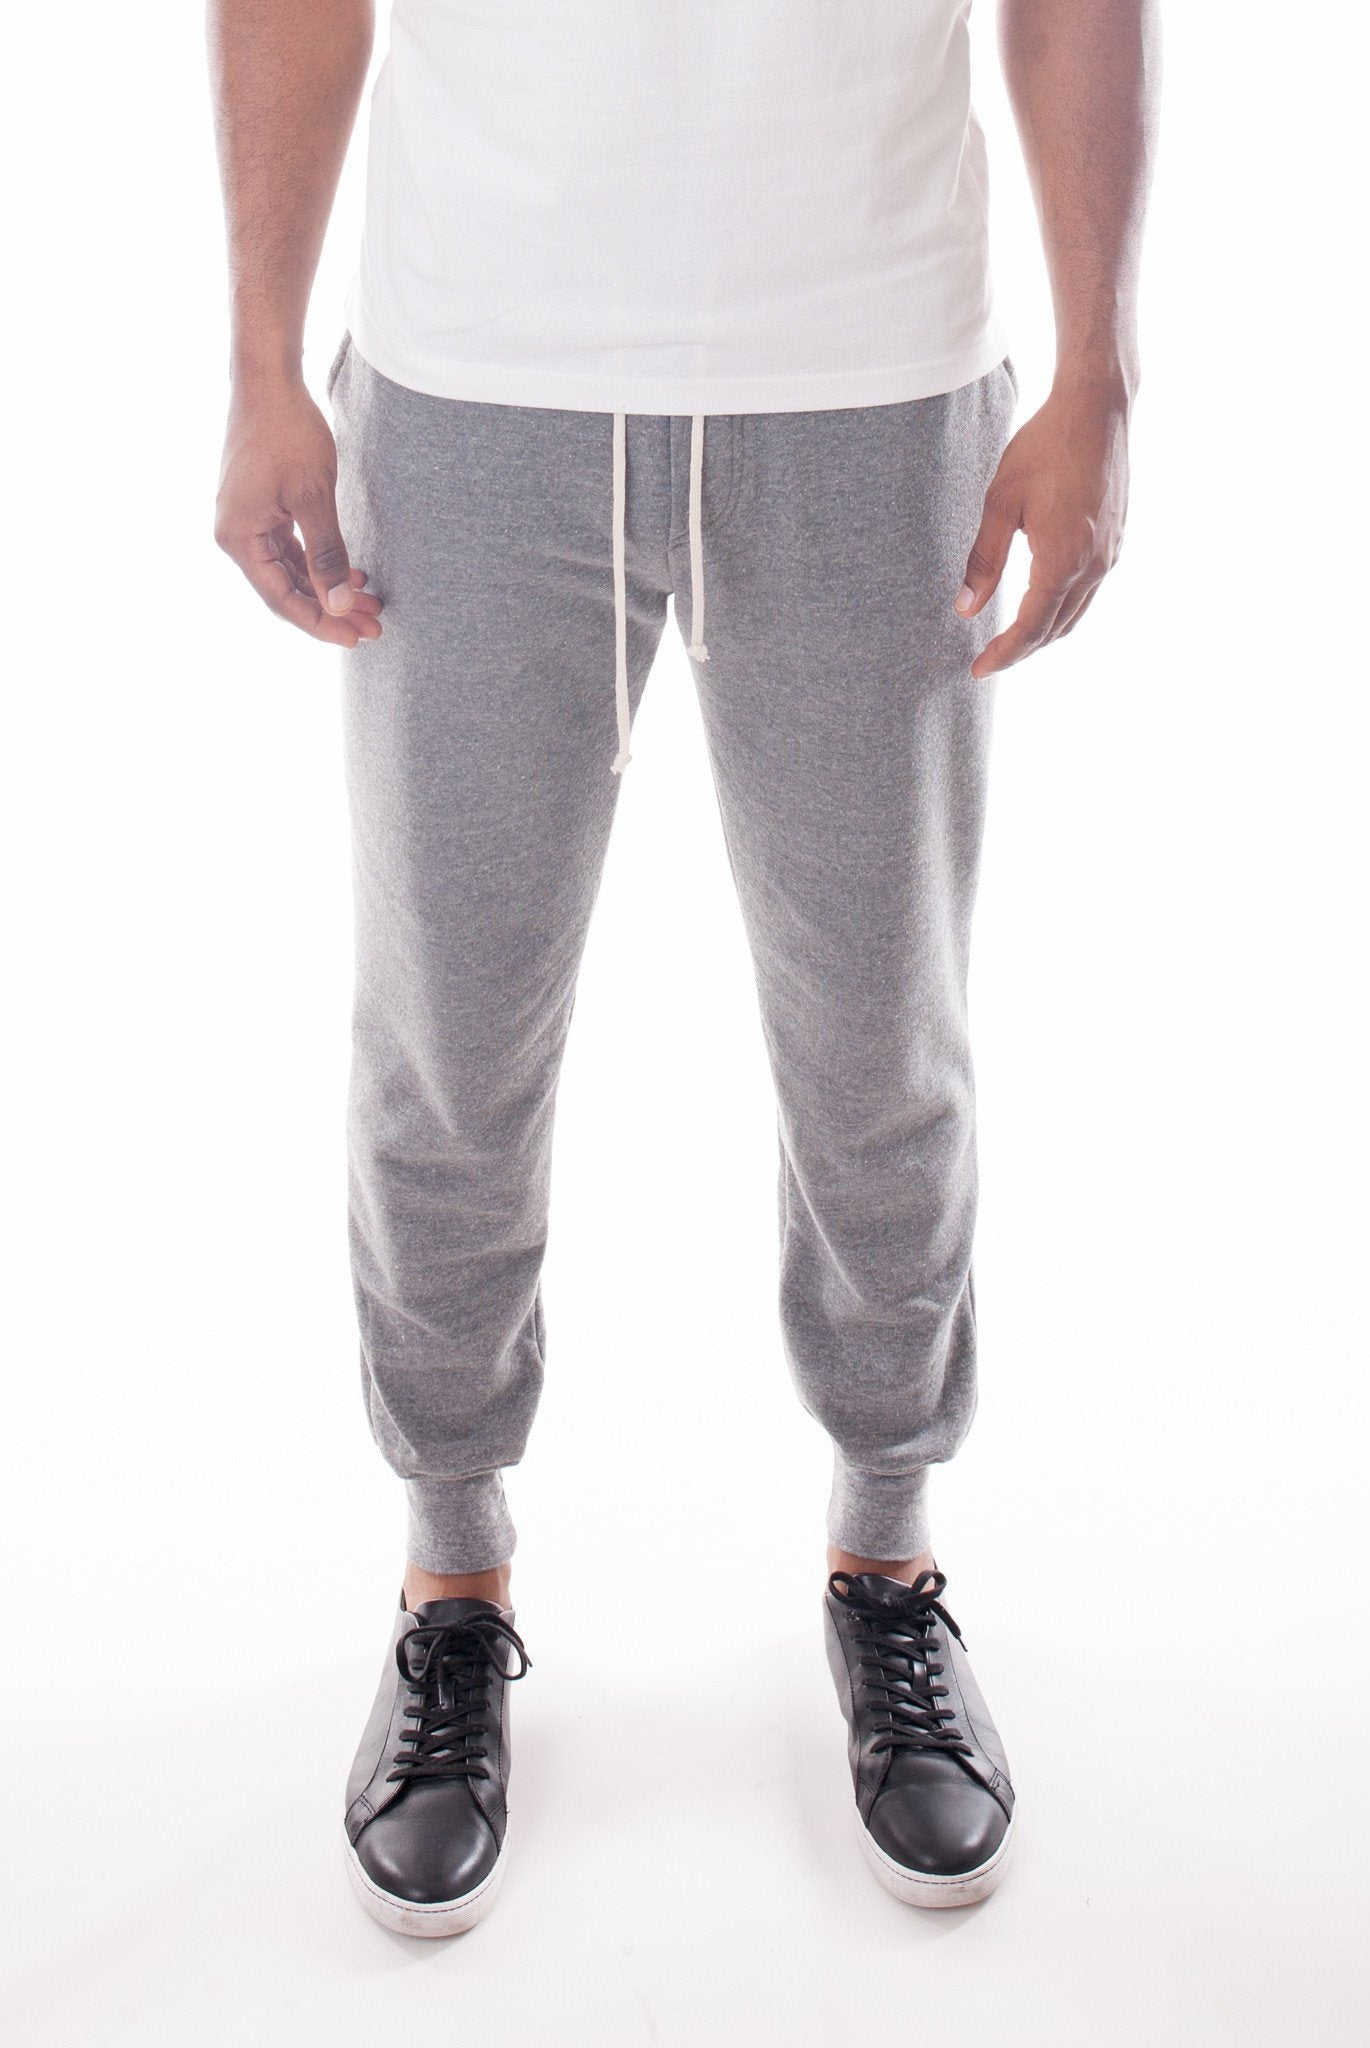 HEATHER GREY JOGGERS | Poor Little Rich Boy Clothing